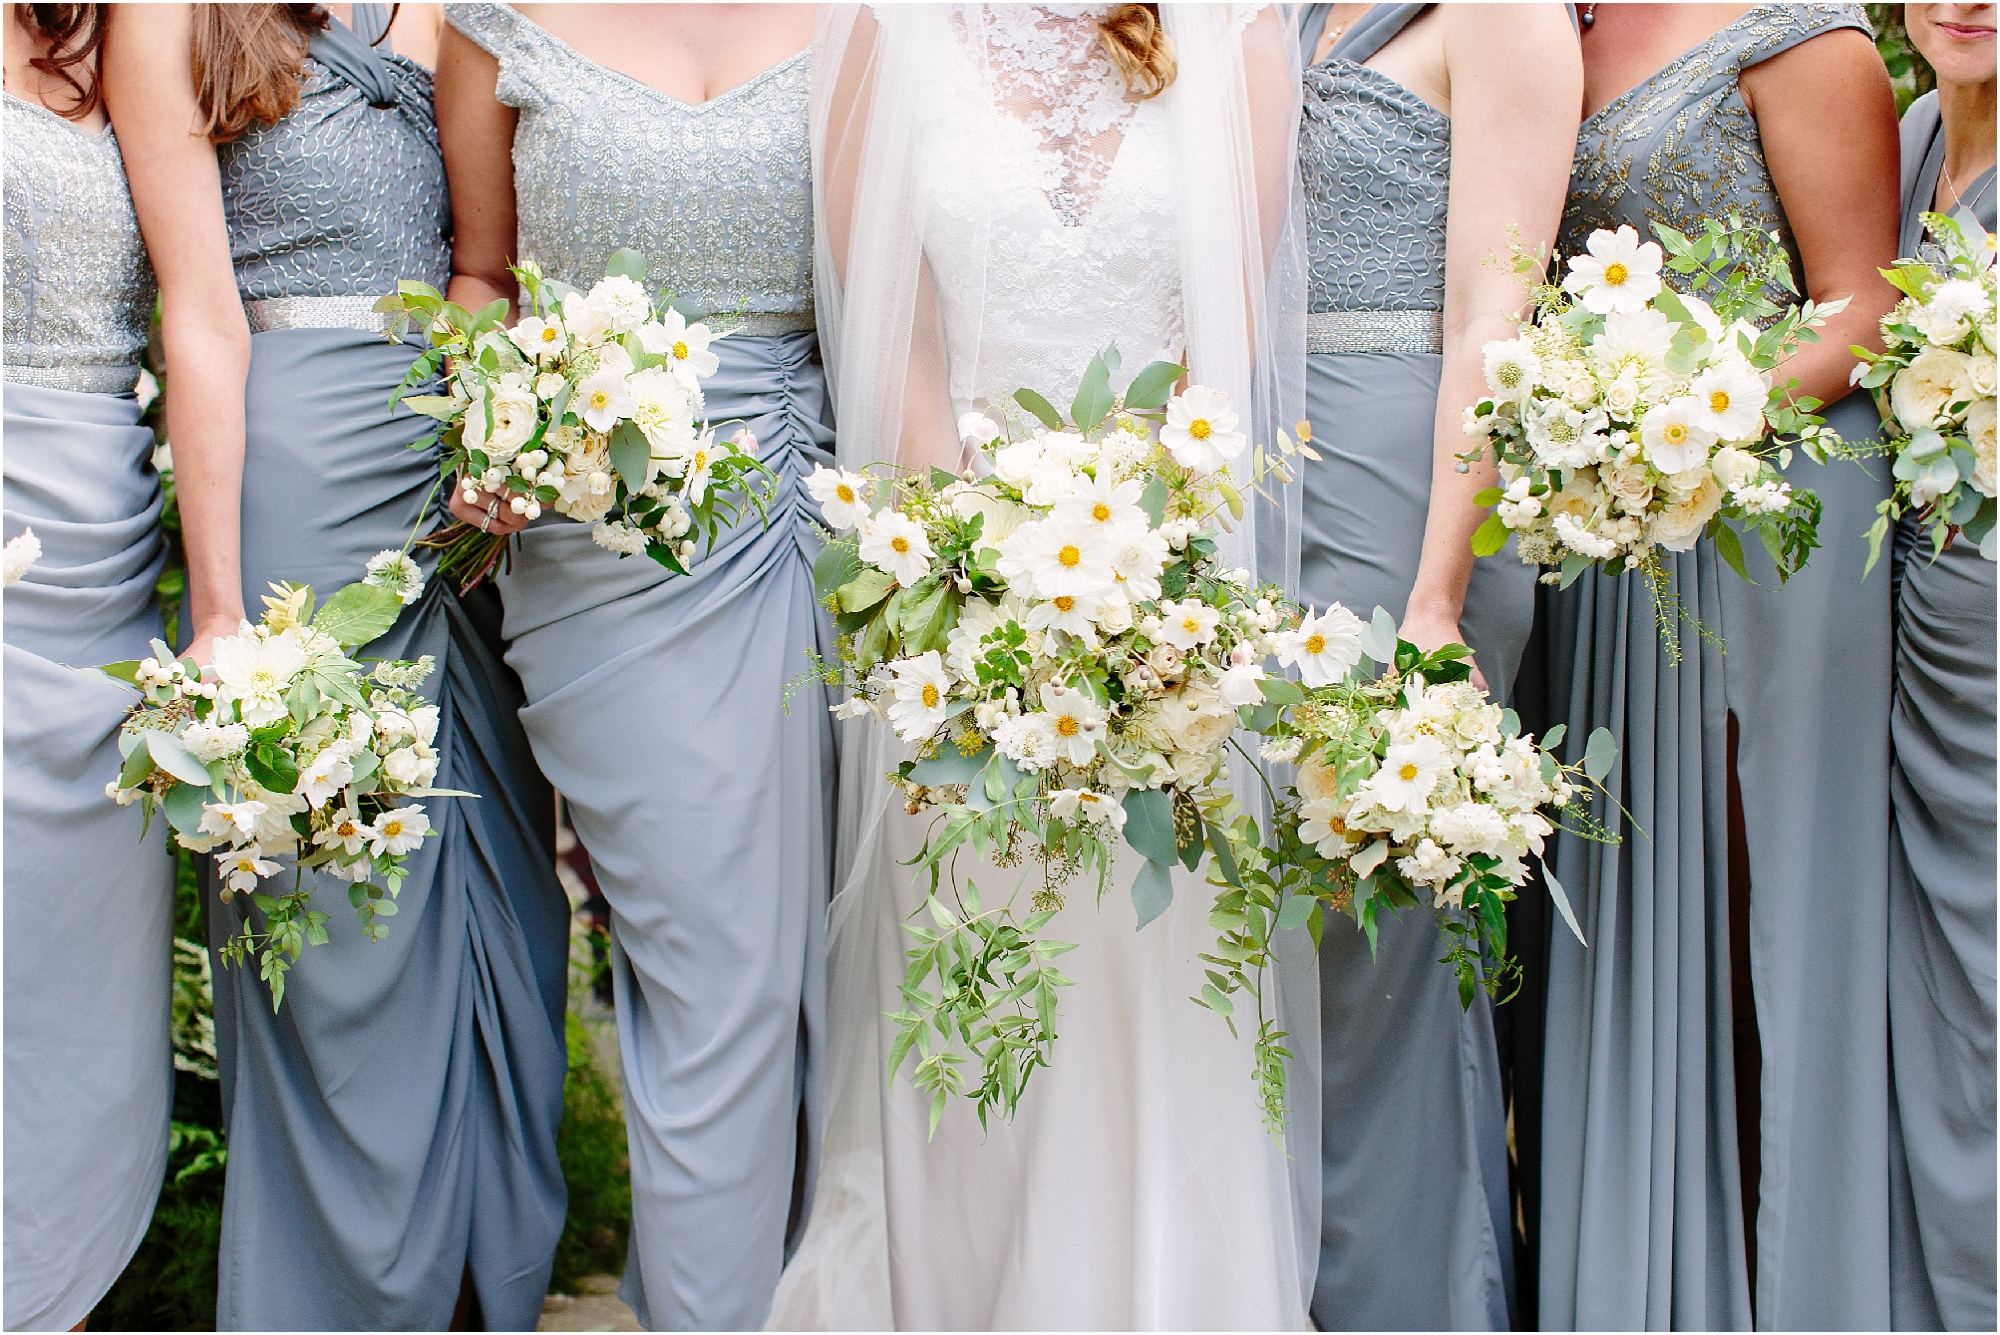 Bridesmaids in blue miss matched dresses